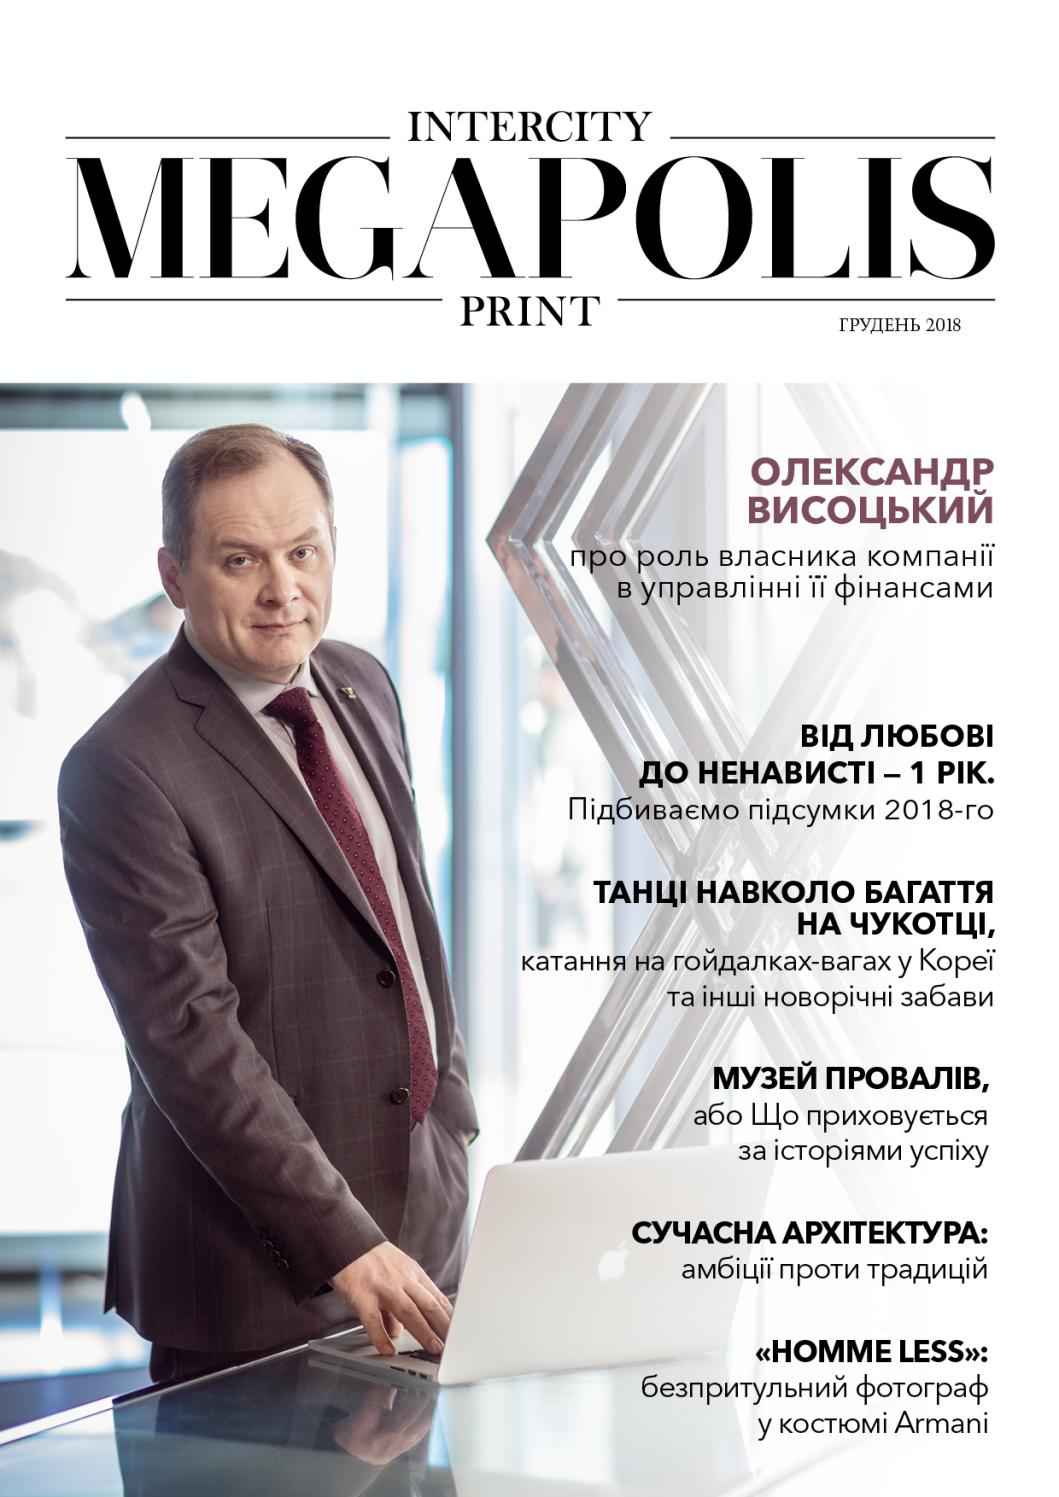 Intercity Megapolis print december 2018 by Intercity-Megapolis-Print - issuu cef1d354378df